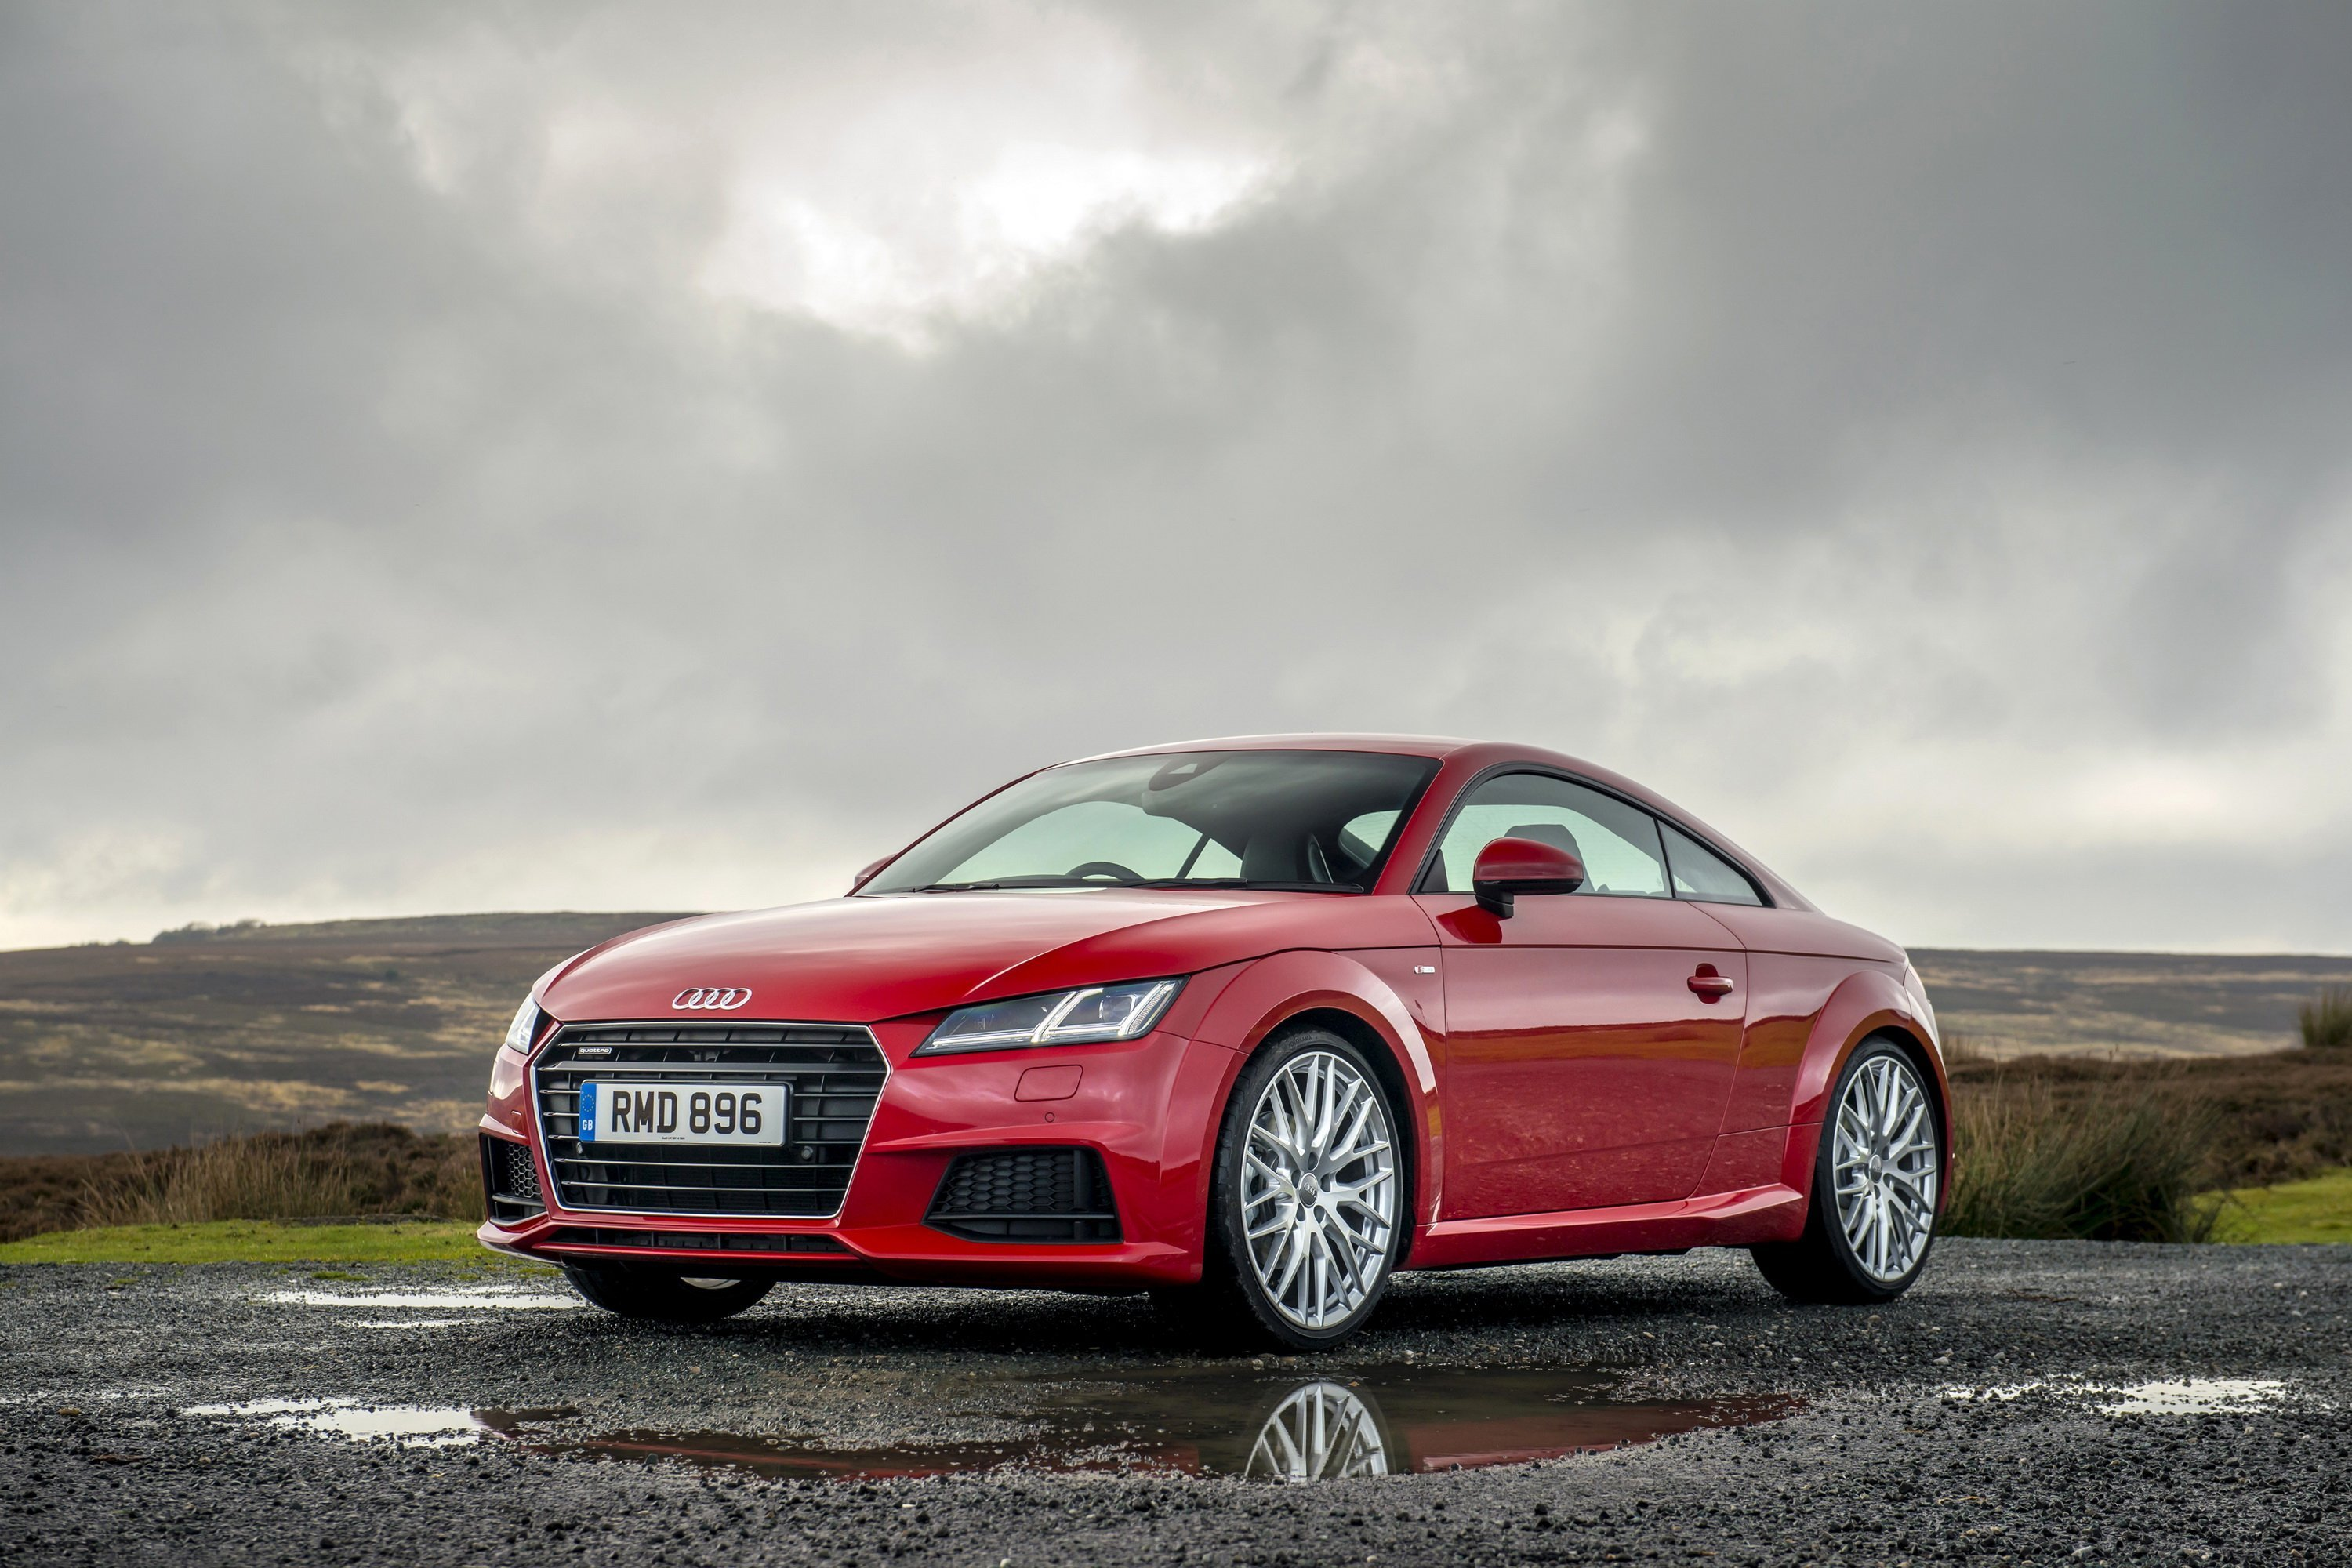 Latest 2015 Audi Tt Red Car Nature Wallpaper Cars Free Download